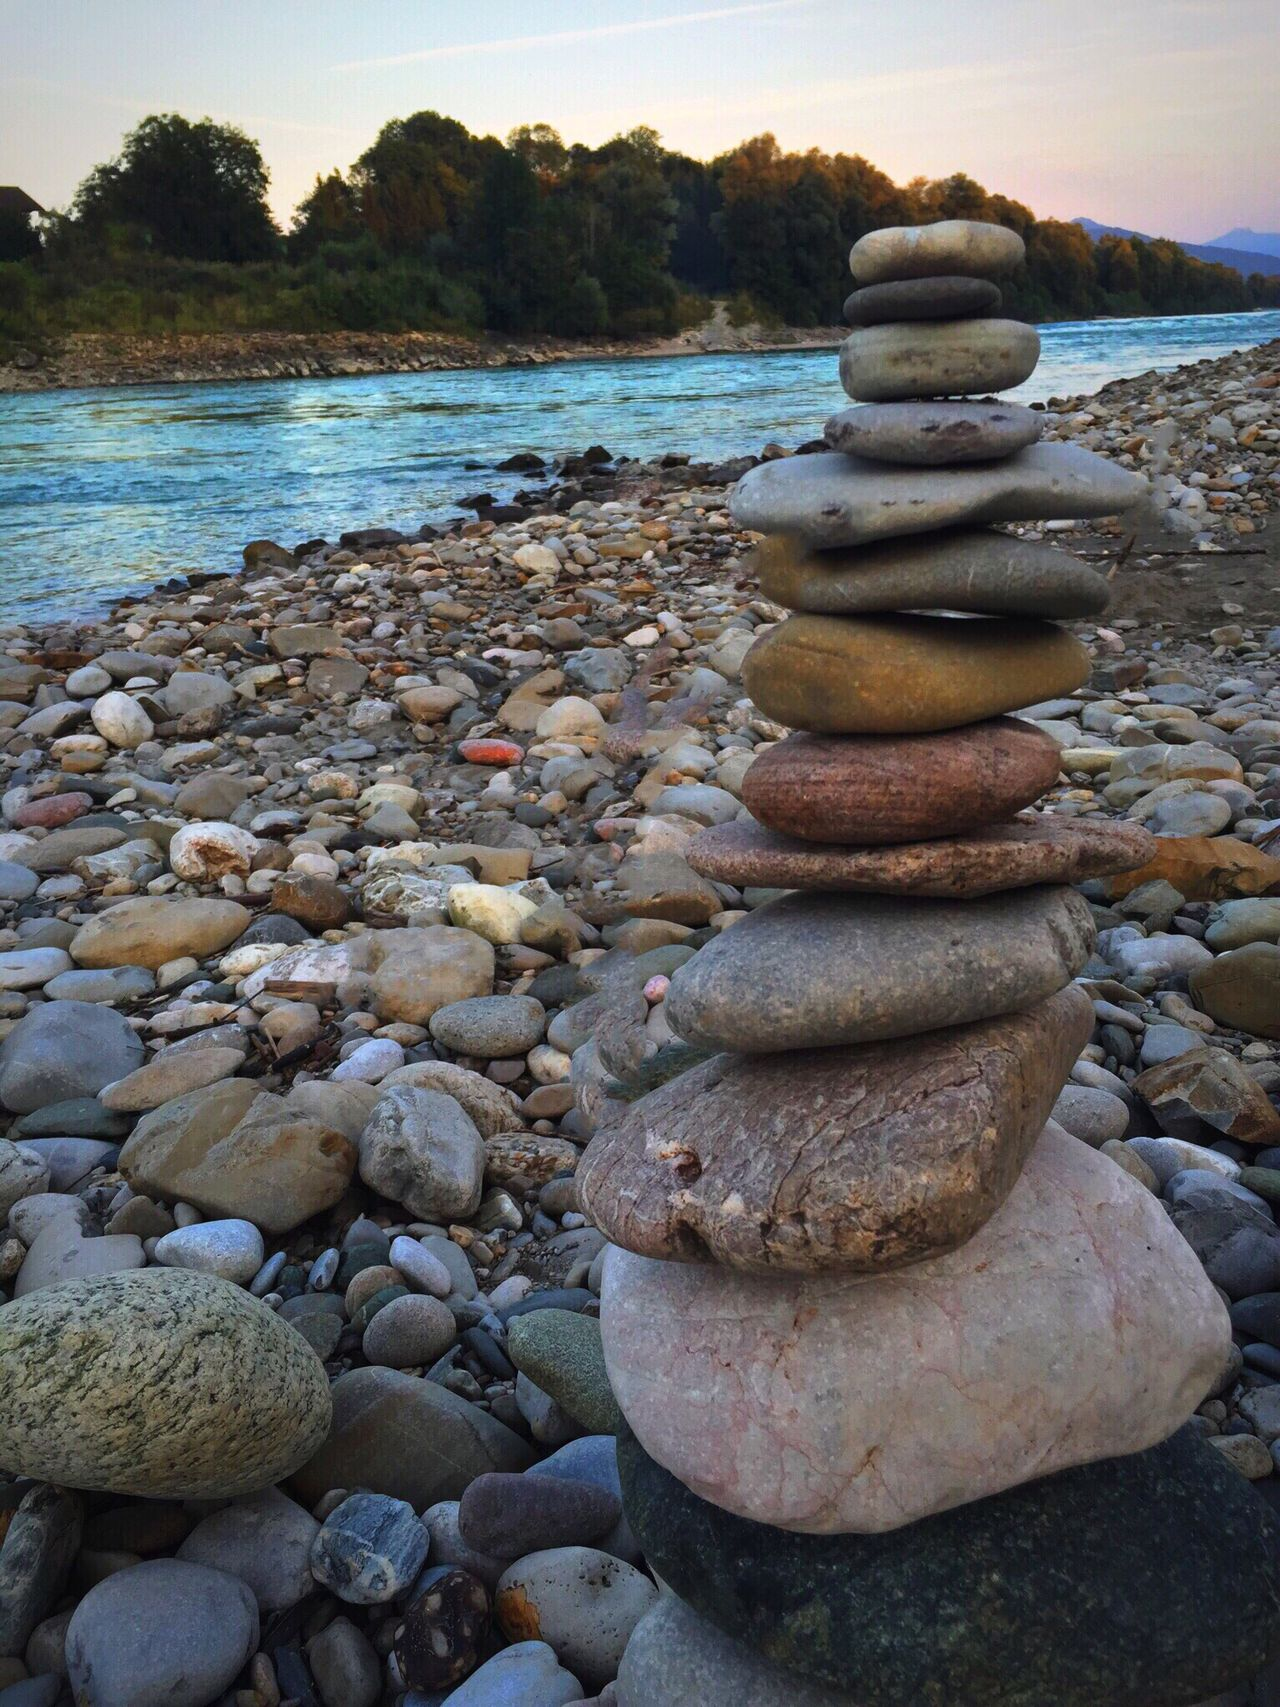 Steintaube am Fluß Balance Stack Stone - Object Pebble Large Group Of Objects Abundance Water Rock - Object Travel Destinations Tranquil Scene Tourism Group Of Objects Tranquility Nature Scenics River Stability Riverbank Sunny Non-urban Scene